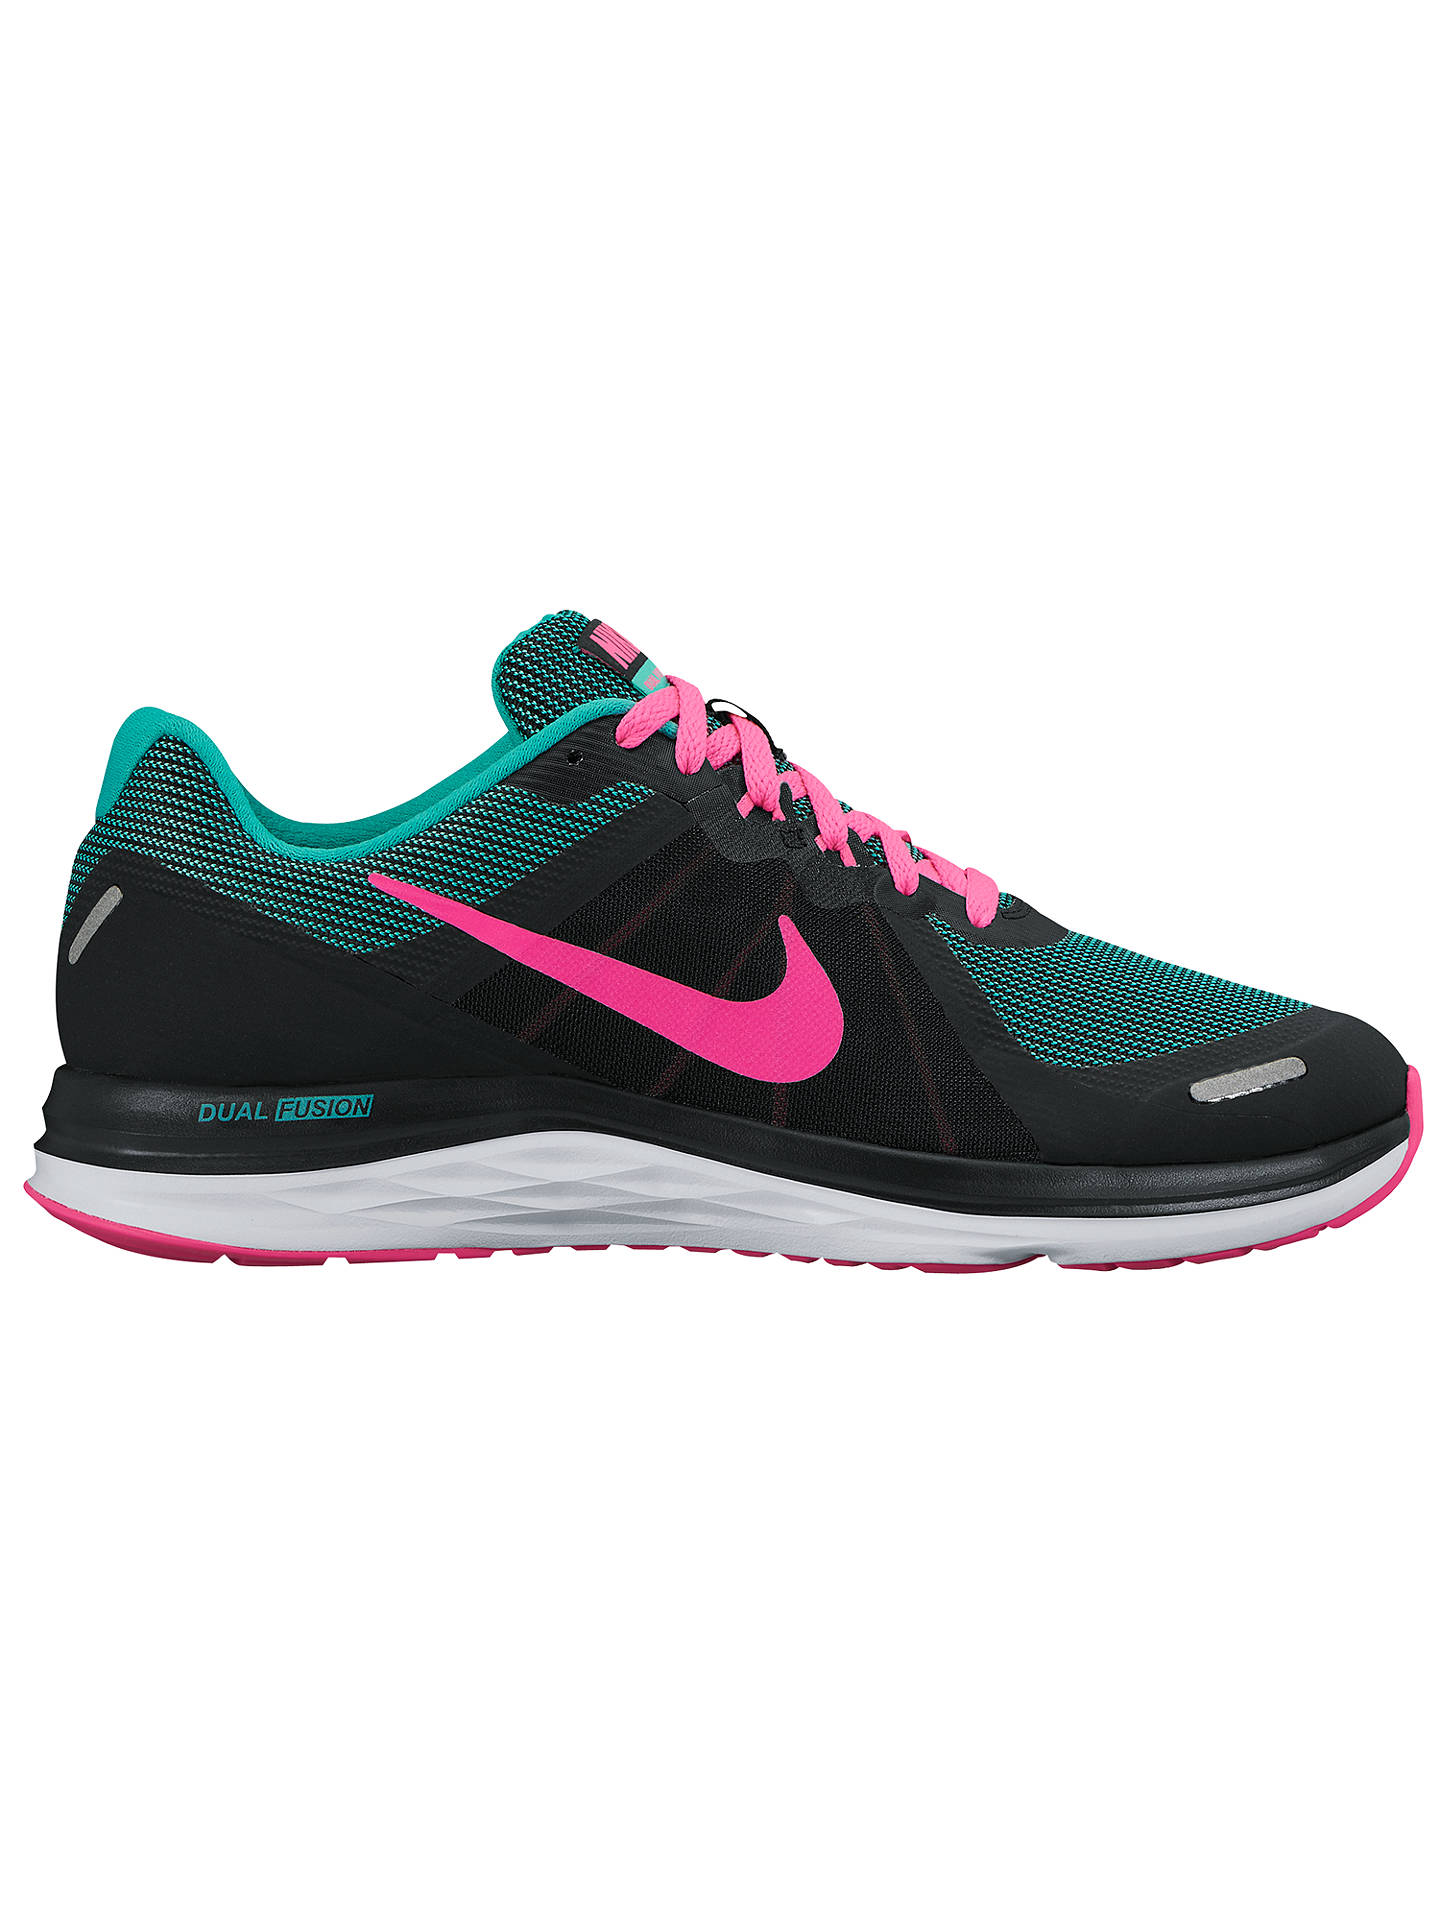 732f7ec6f39 BuyNike Dual Fusion X 2 Women s Running Shoes